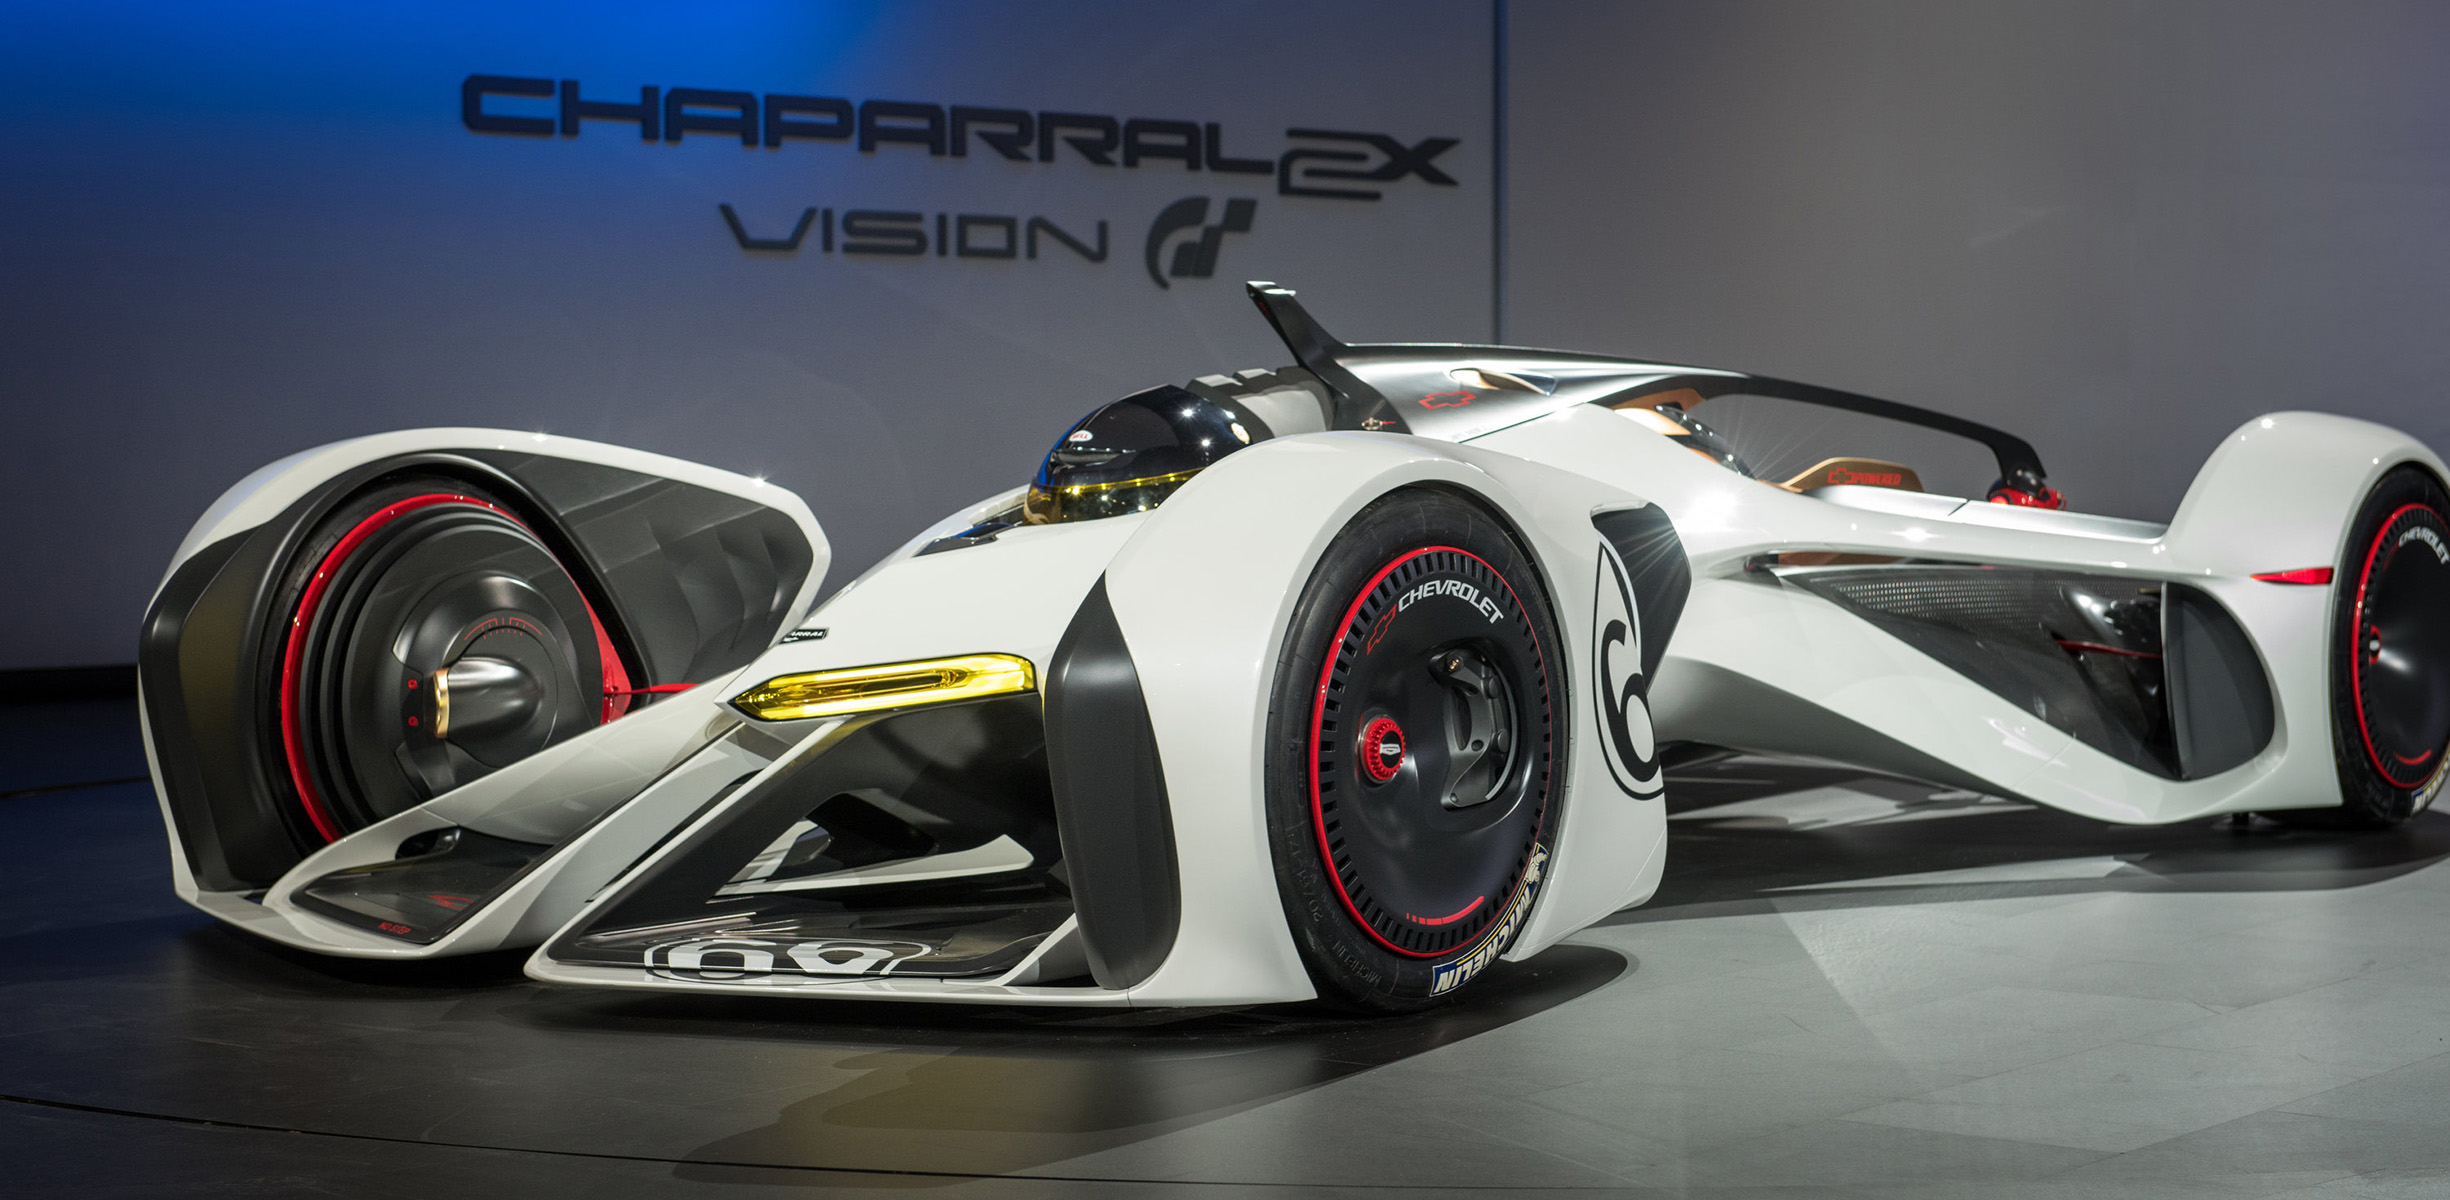 2x 2x Chevrolet Chaparral 2x Vision Gran Turismo Is Powered By